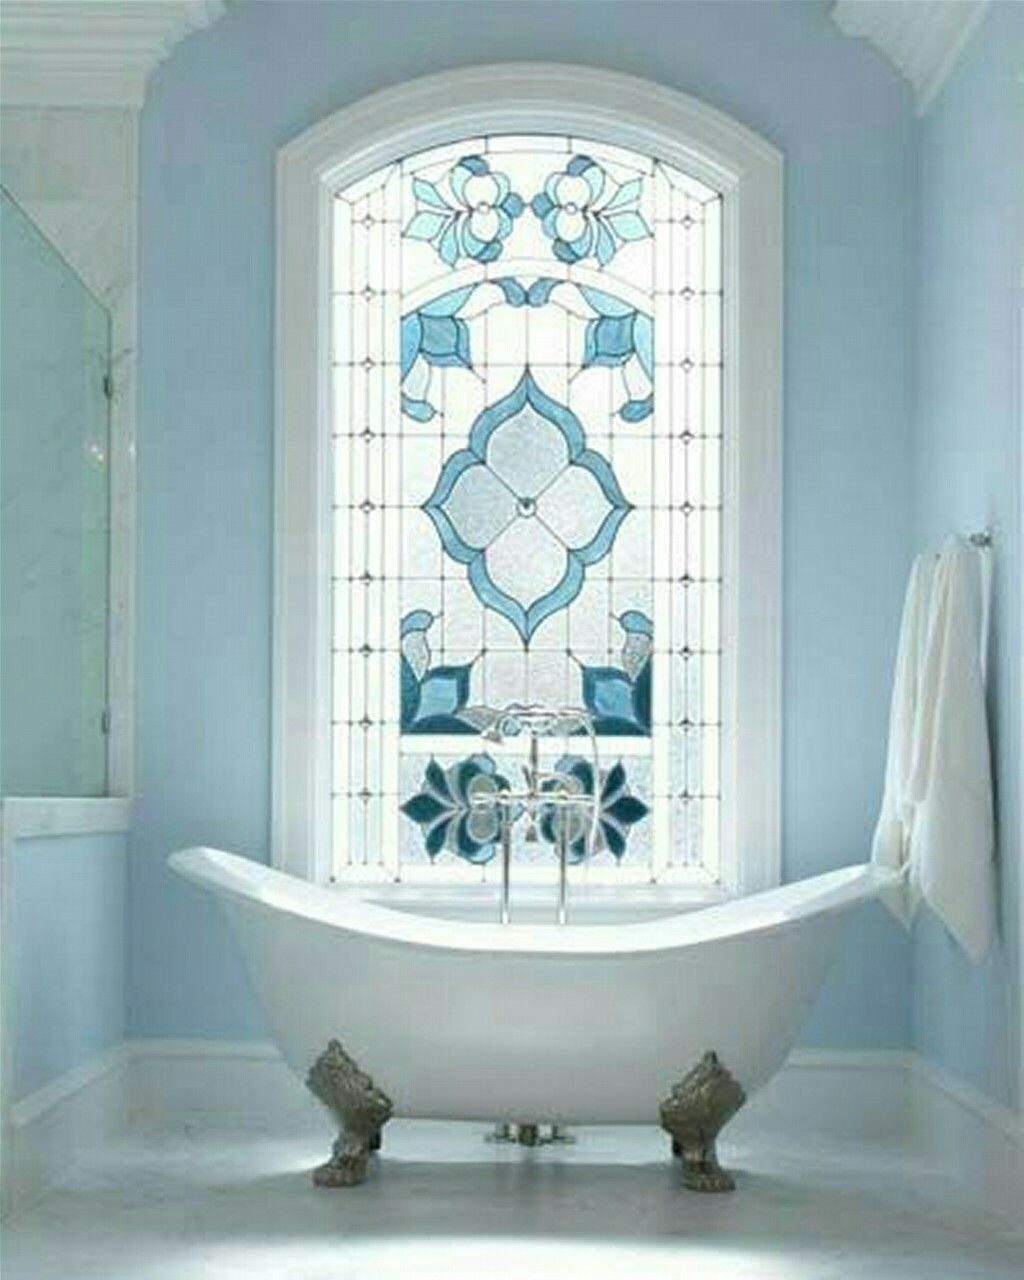 Blue Vintage Bathroom Decor With Stained Glass Window Cool Pics